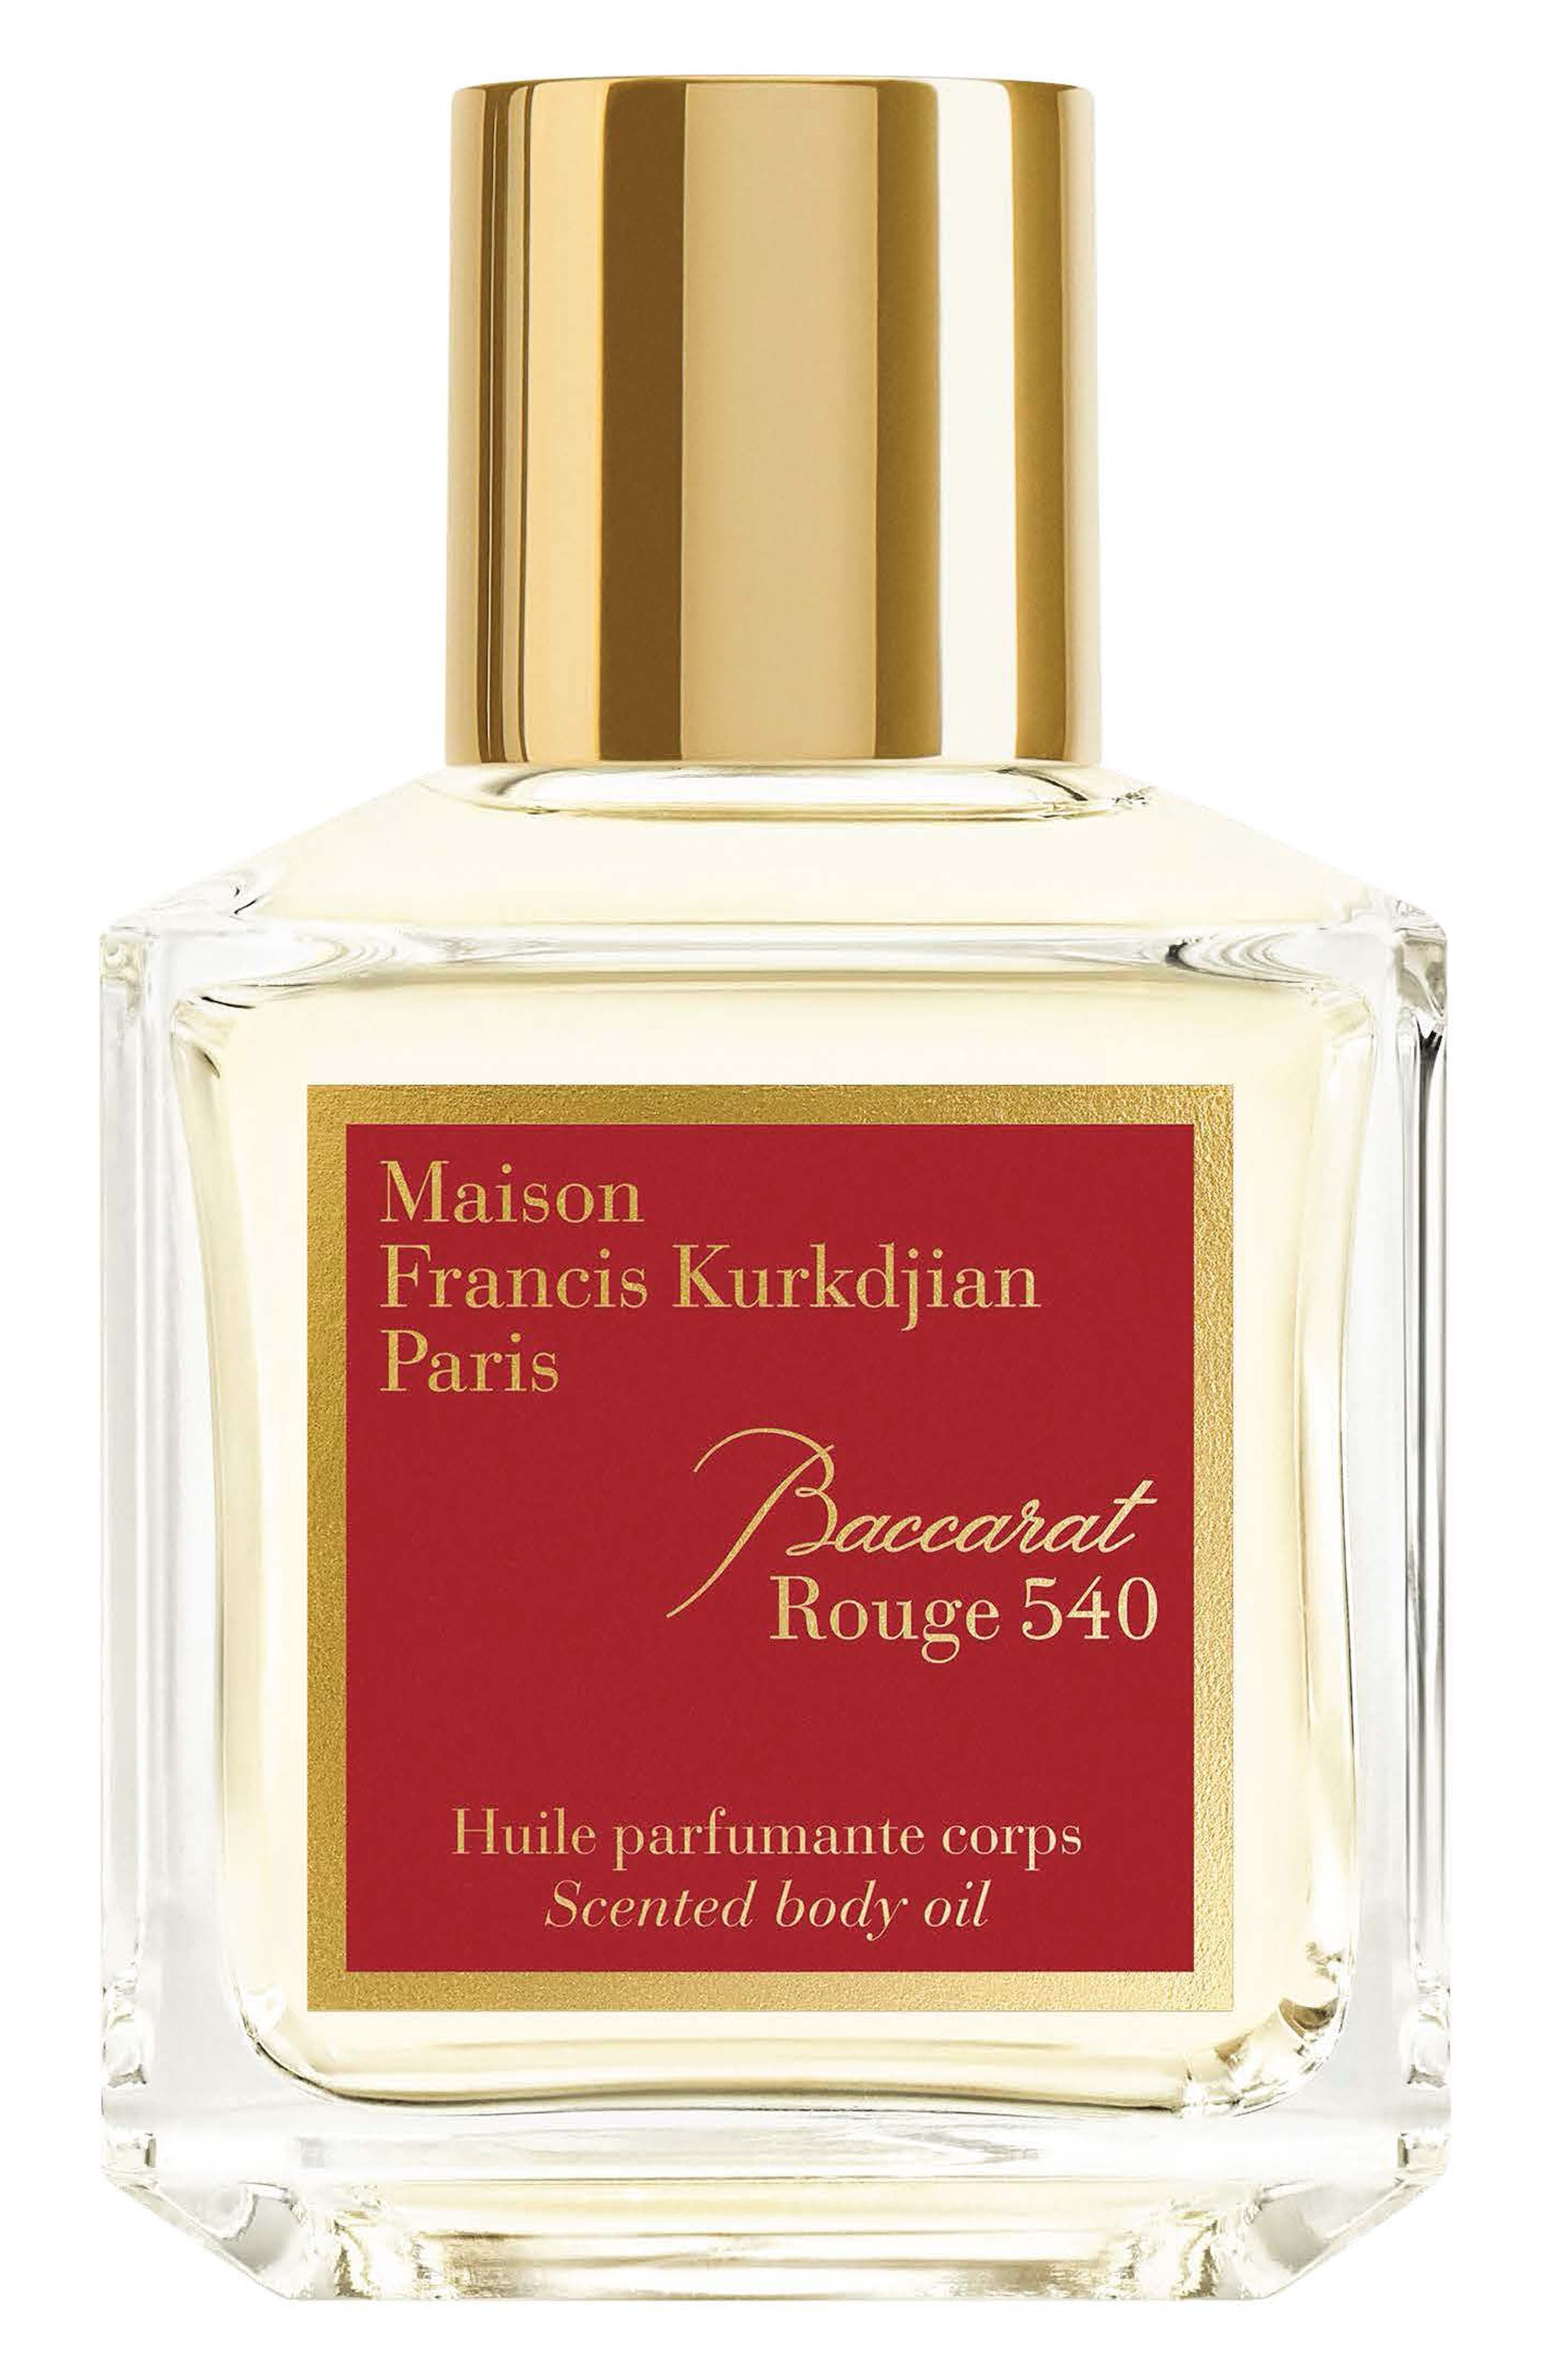 Paris Baccarat Rouge 540 Scented Body Oil